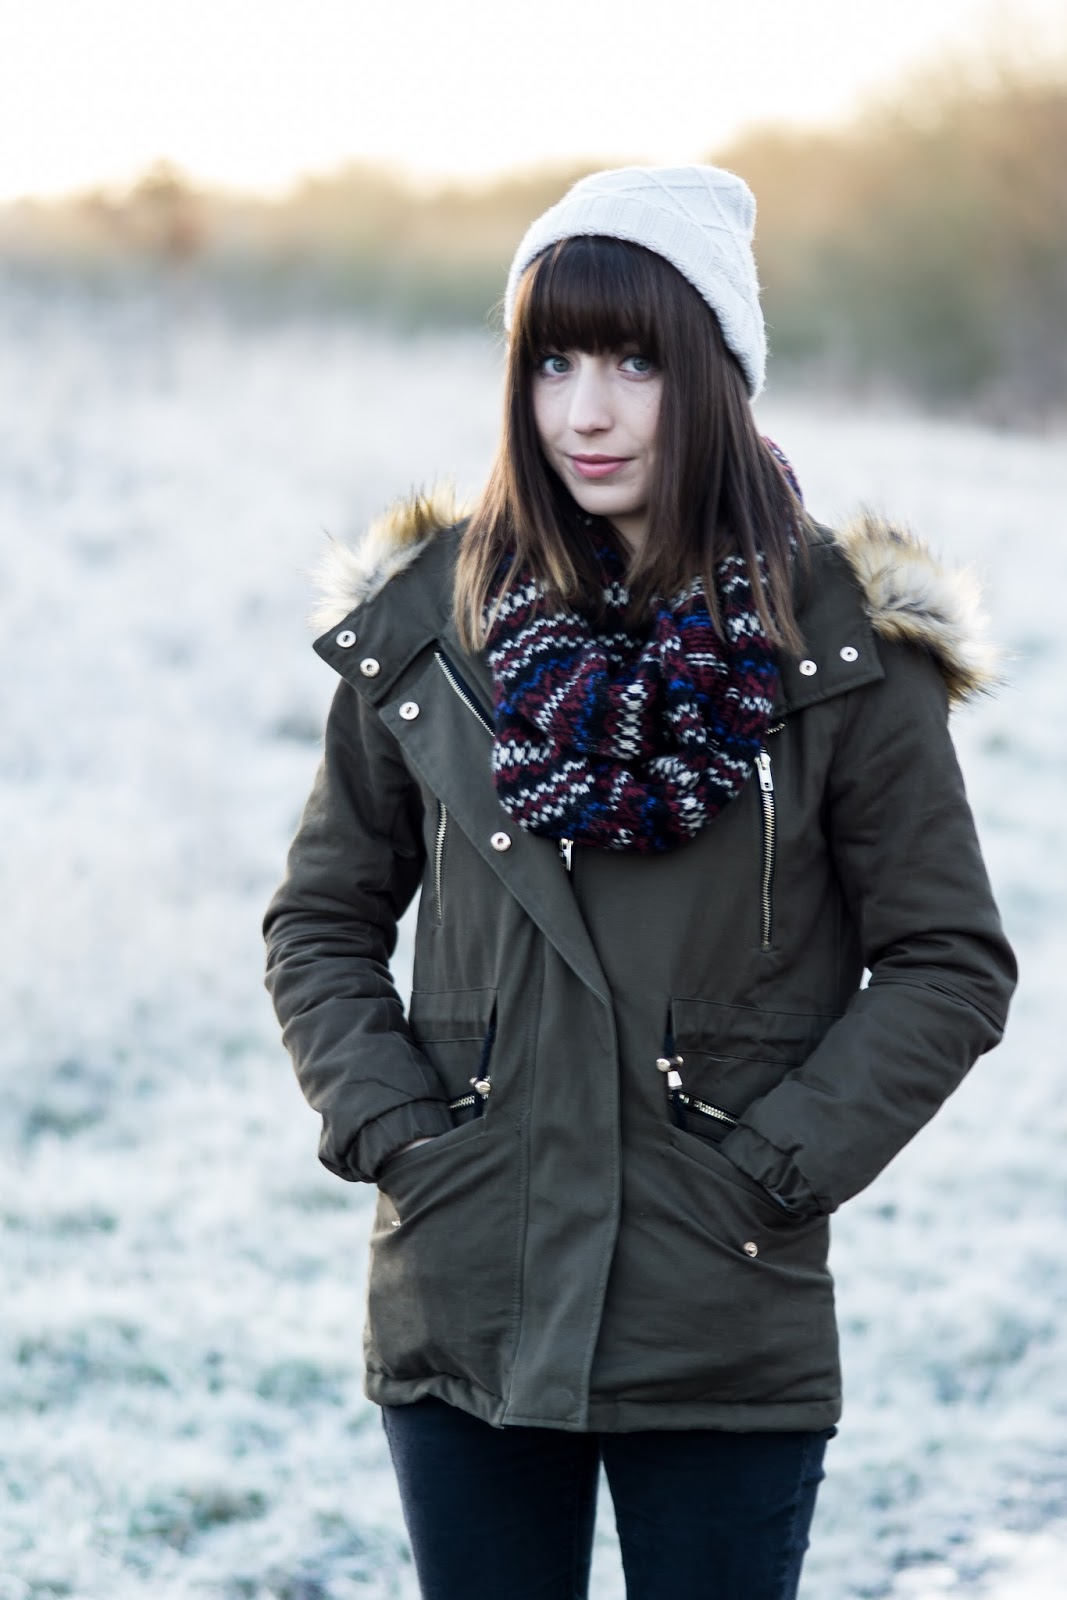 Hello Freckles Frosty Morning Fashion Union Parka OOTD Portrait